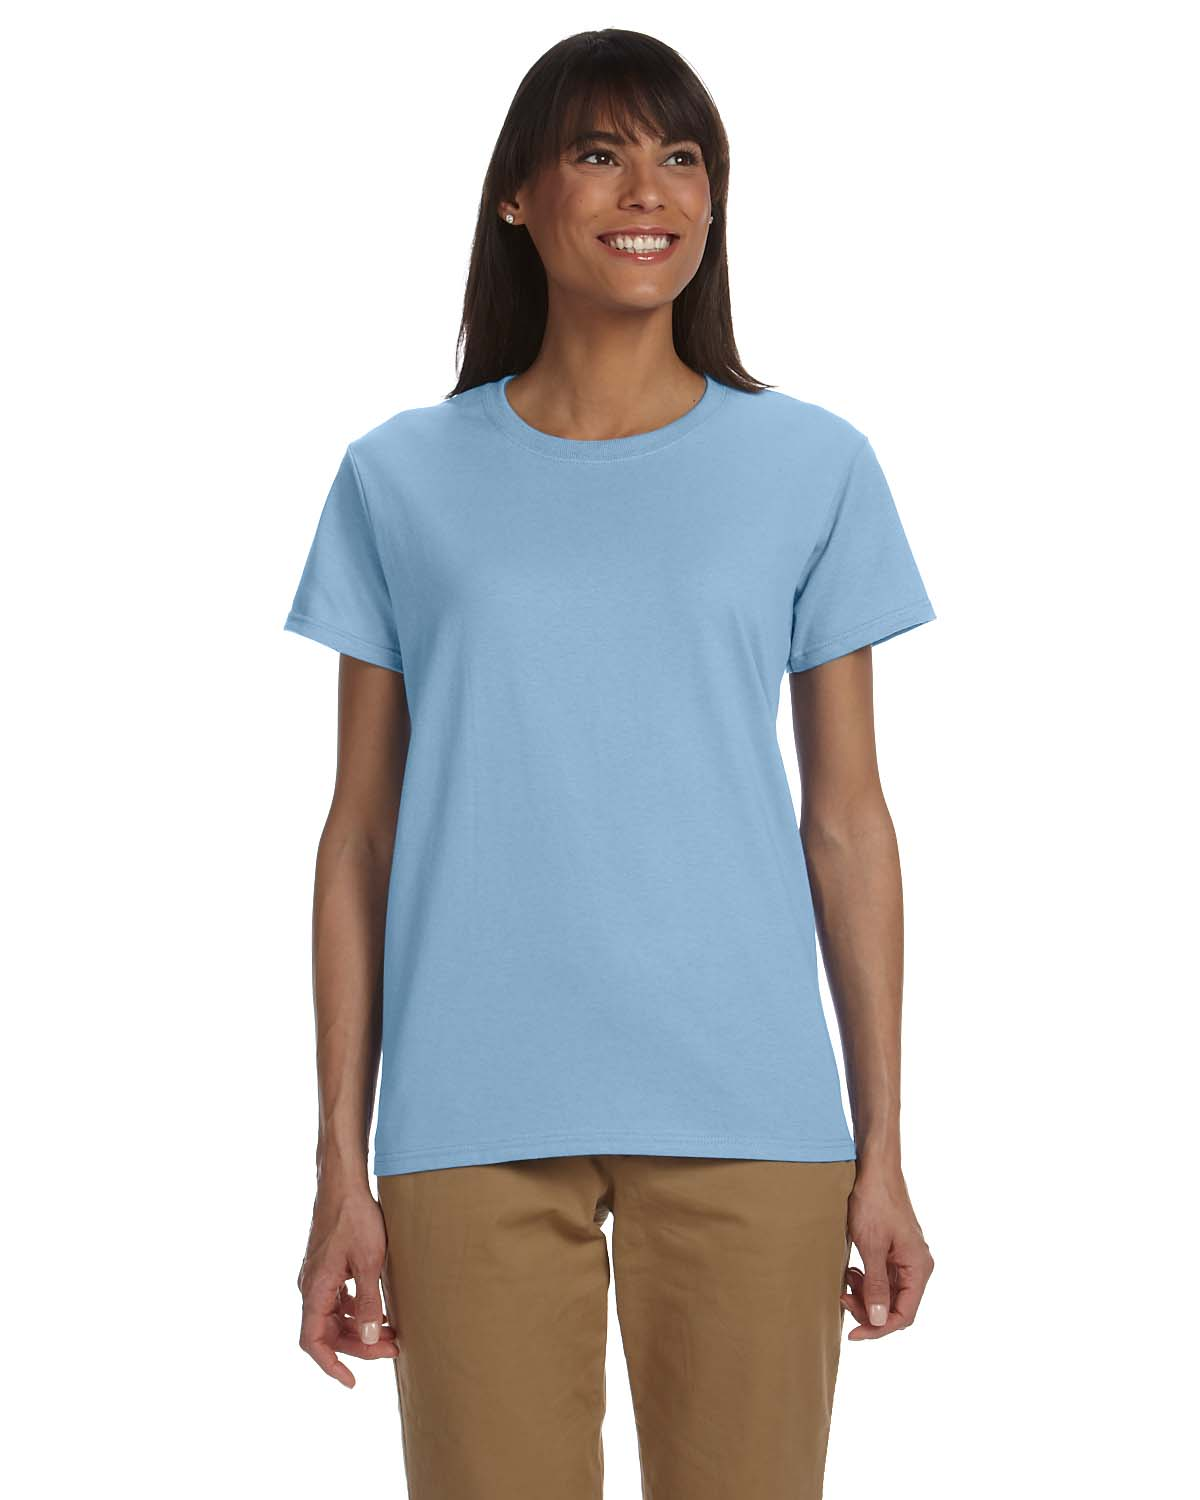 Free Shipping with $50 purchase. Shop tiodegwiege.cf for a terrific selection of flattering women's shirts and tops – T-shirts, turtlenecks, dress shirts and button-downs. .